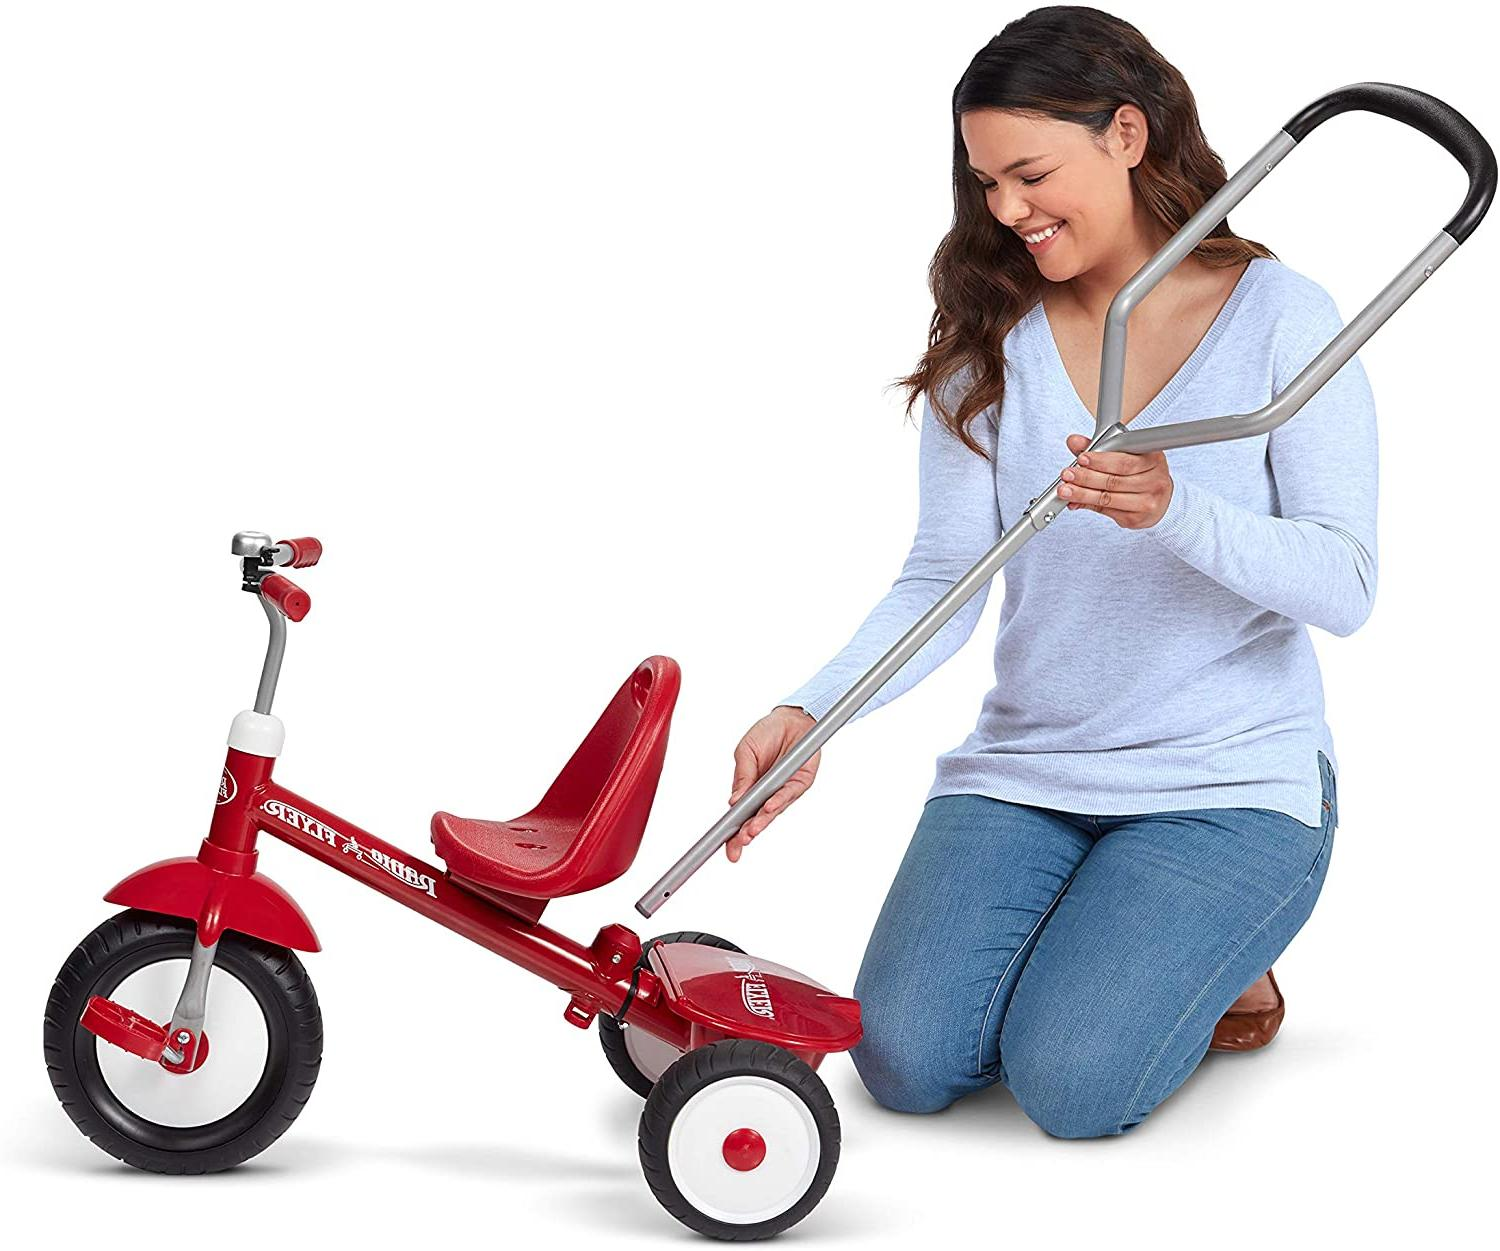 new deluxe steer and stroll tricycle trike